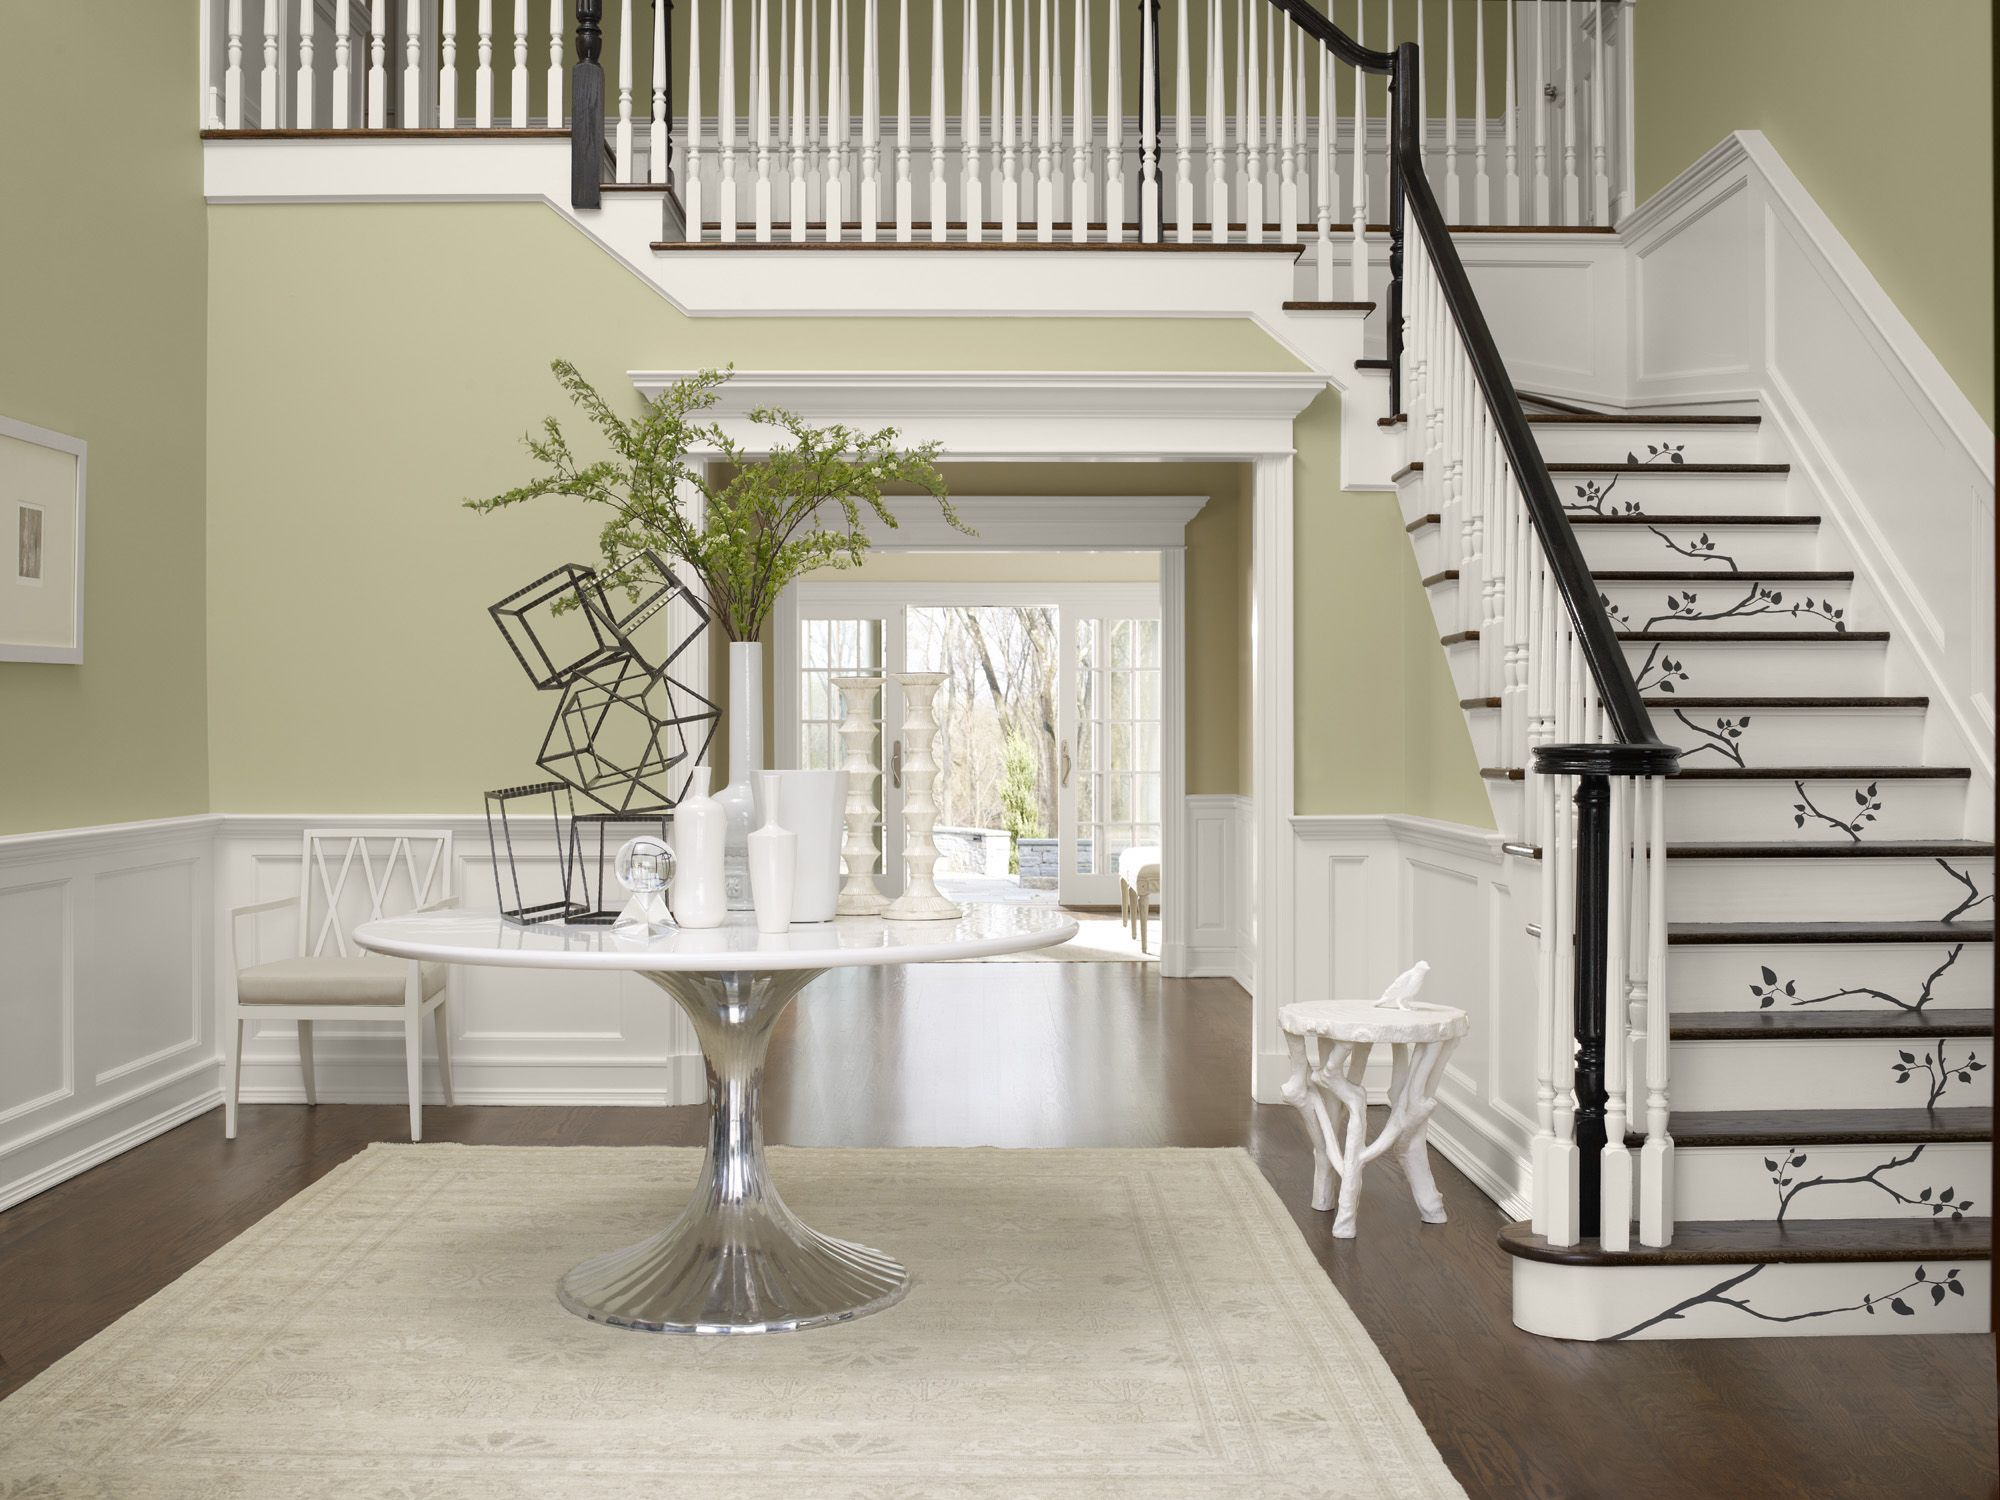 Hallway Colors 7 Tips For The Perfect Welcoming Hallway  Benjamin Moore Paint